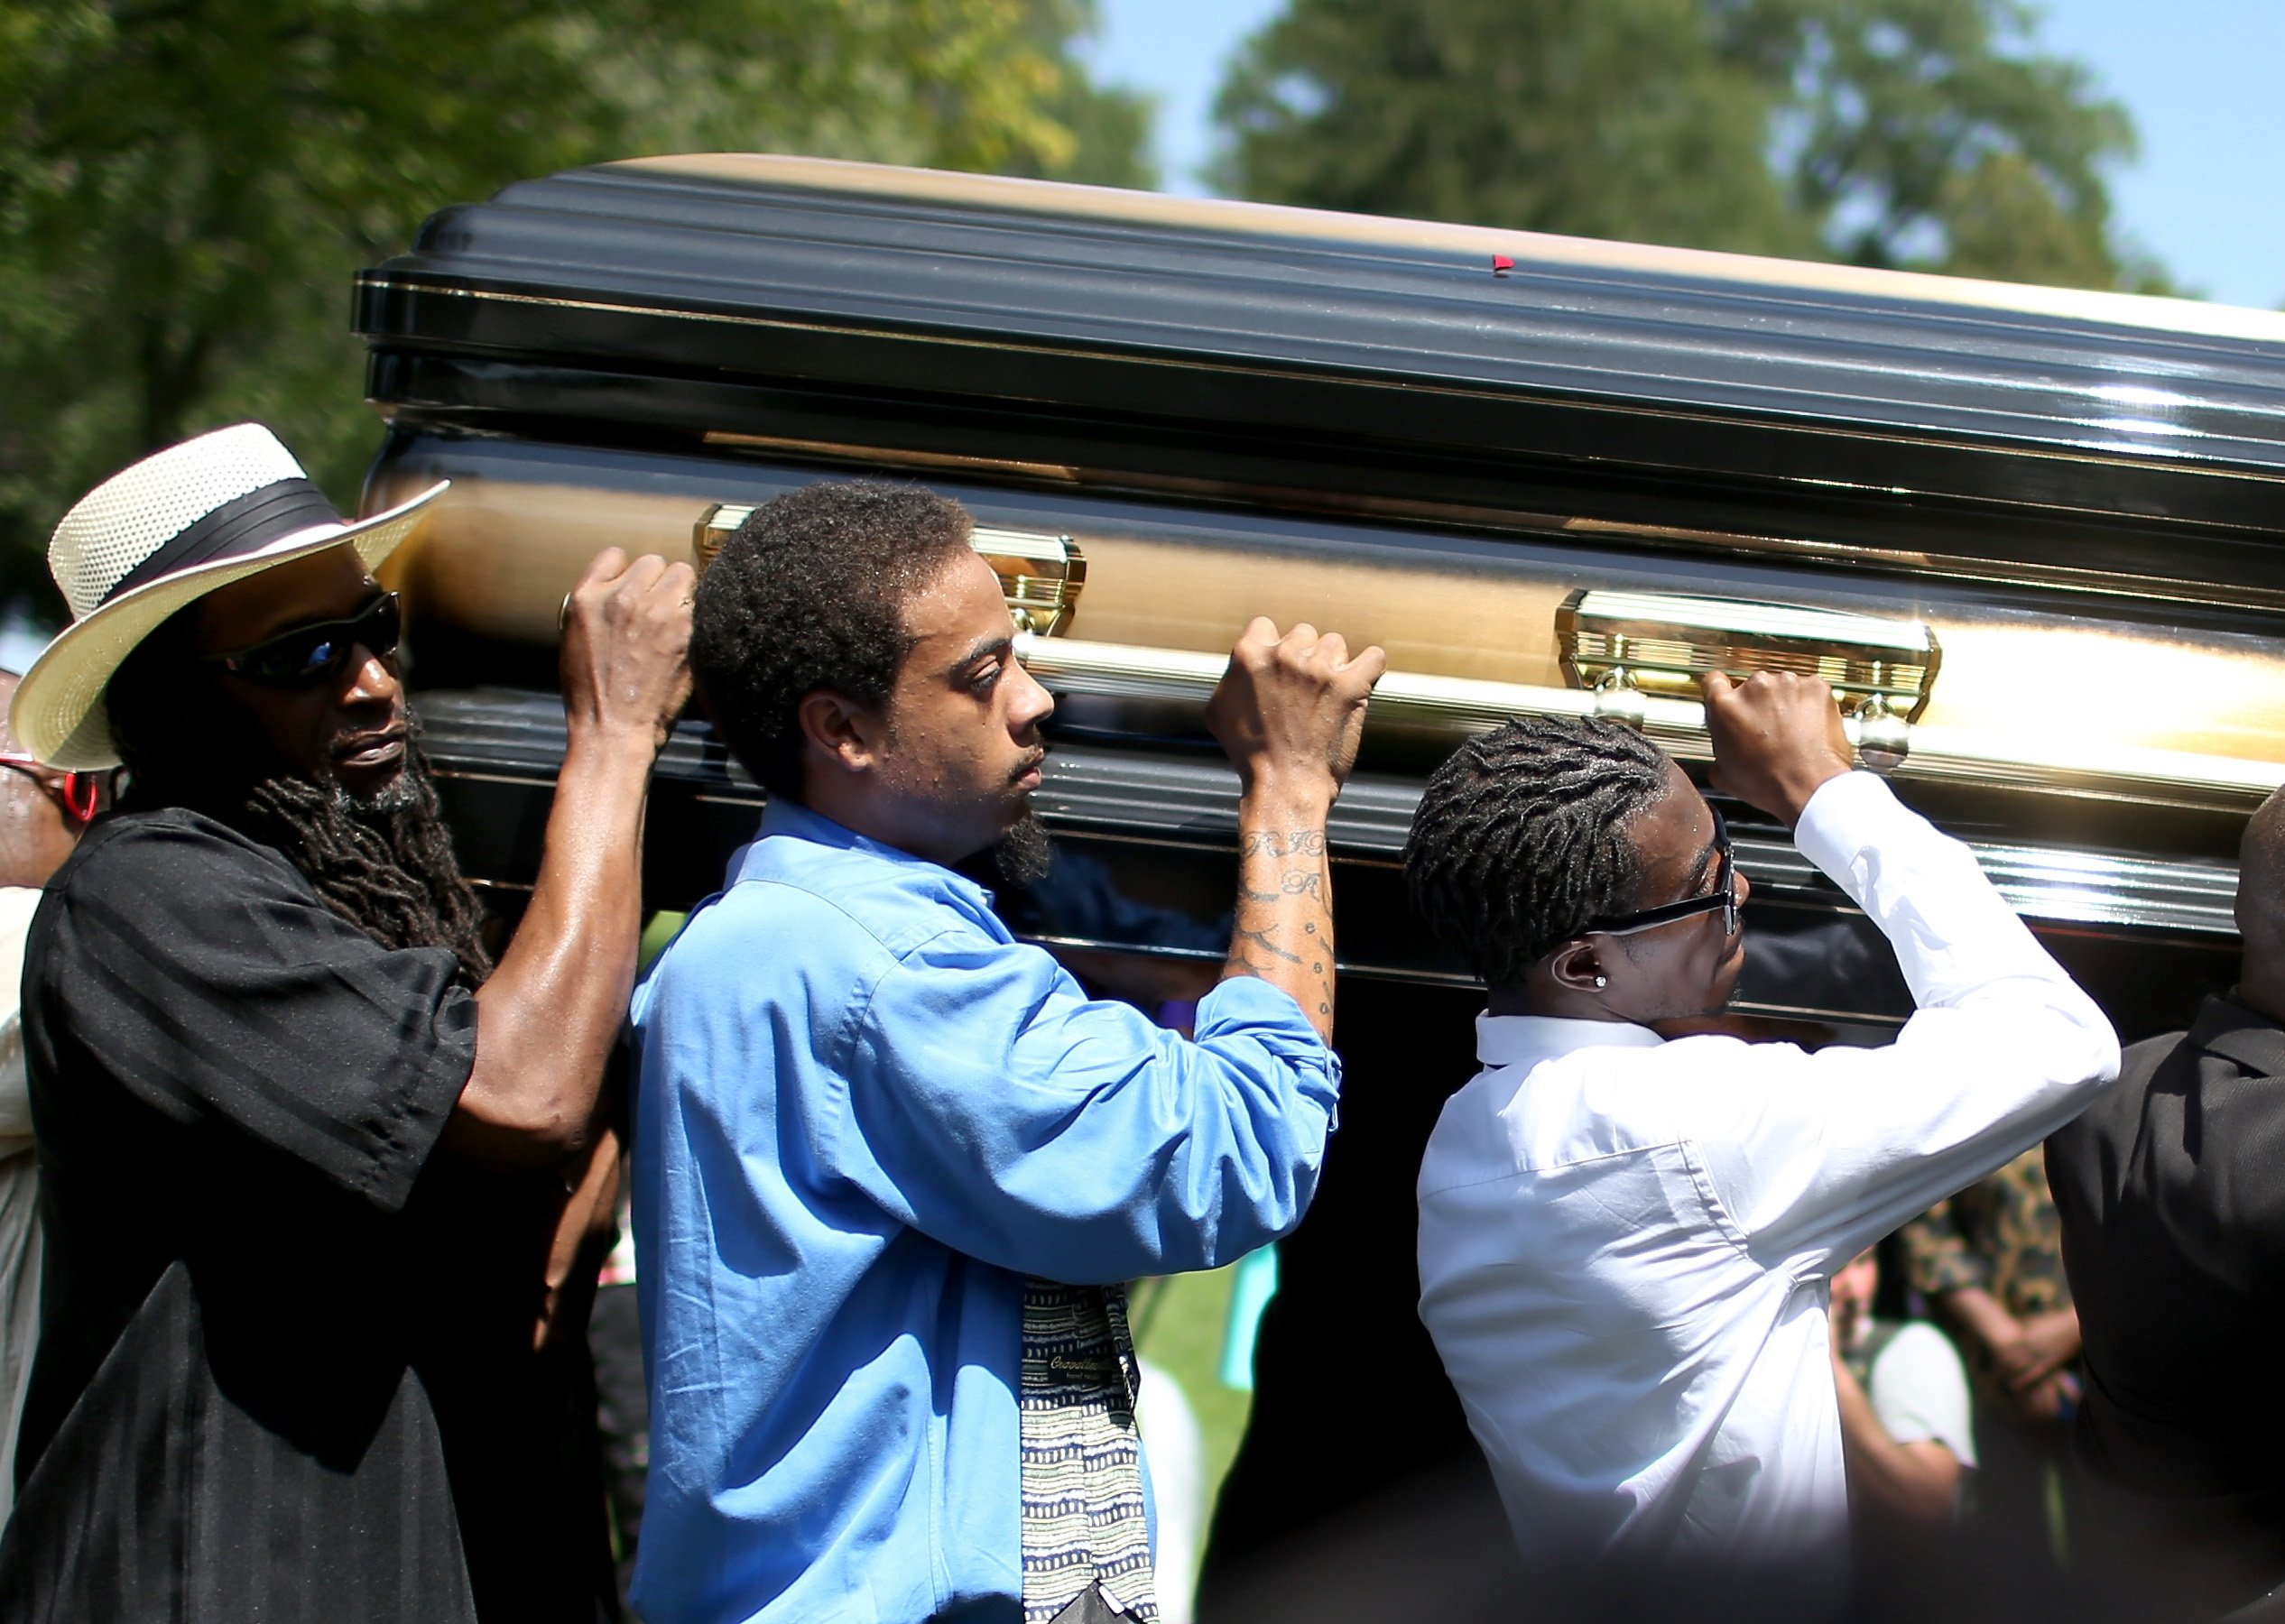 Pallbearers carry the casket of Michael Brown at St. Peter's Cemetery in St. Louis on Aug. 25, 2014.